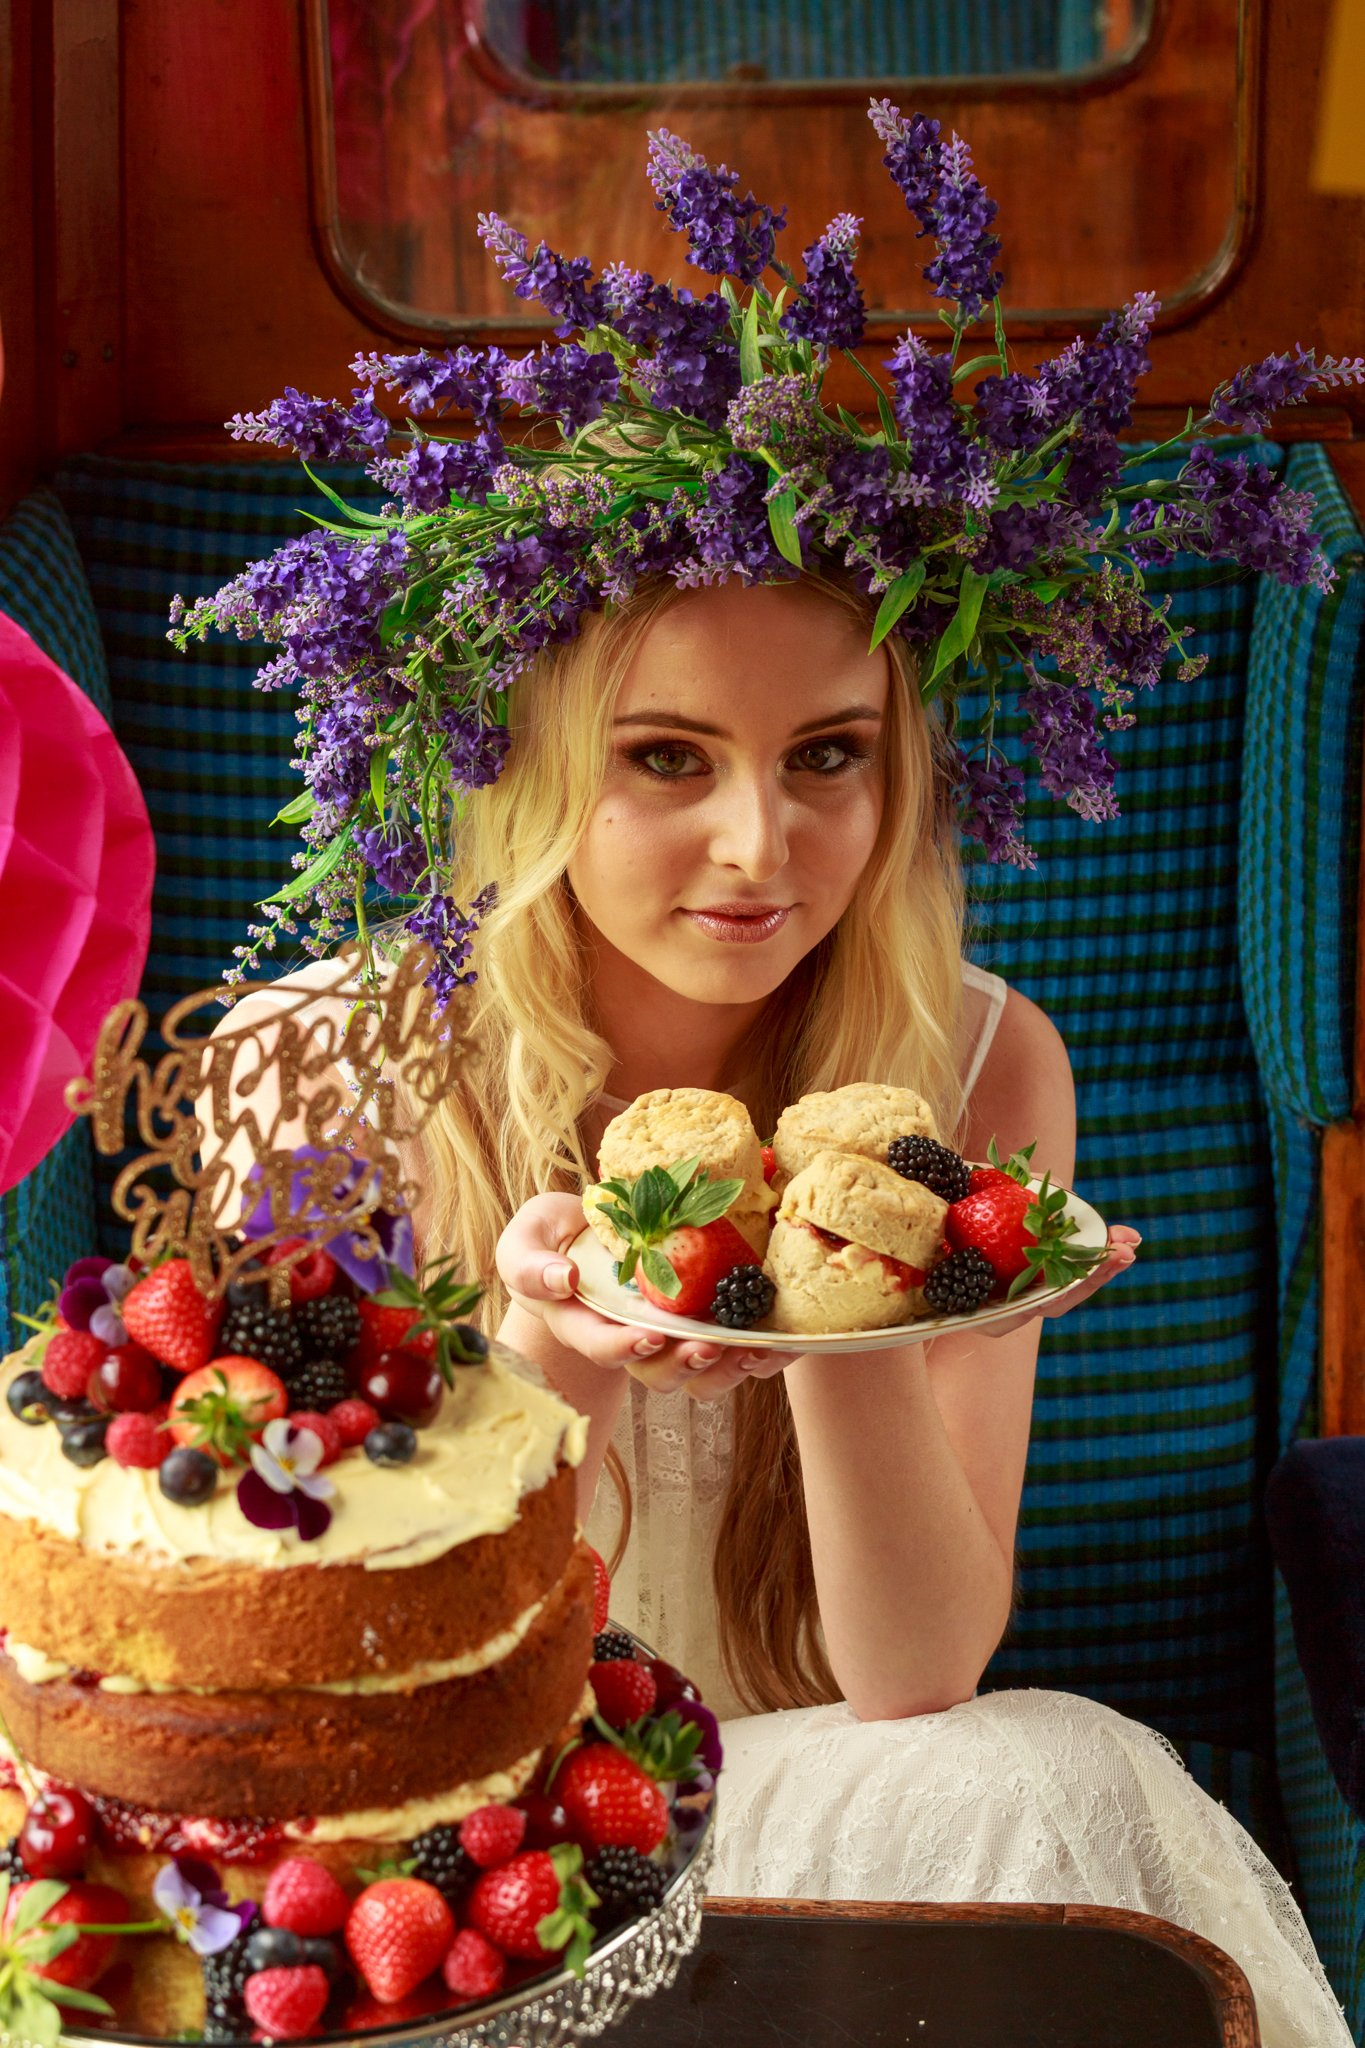 Model Indie poses with cakes